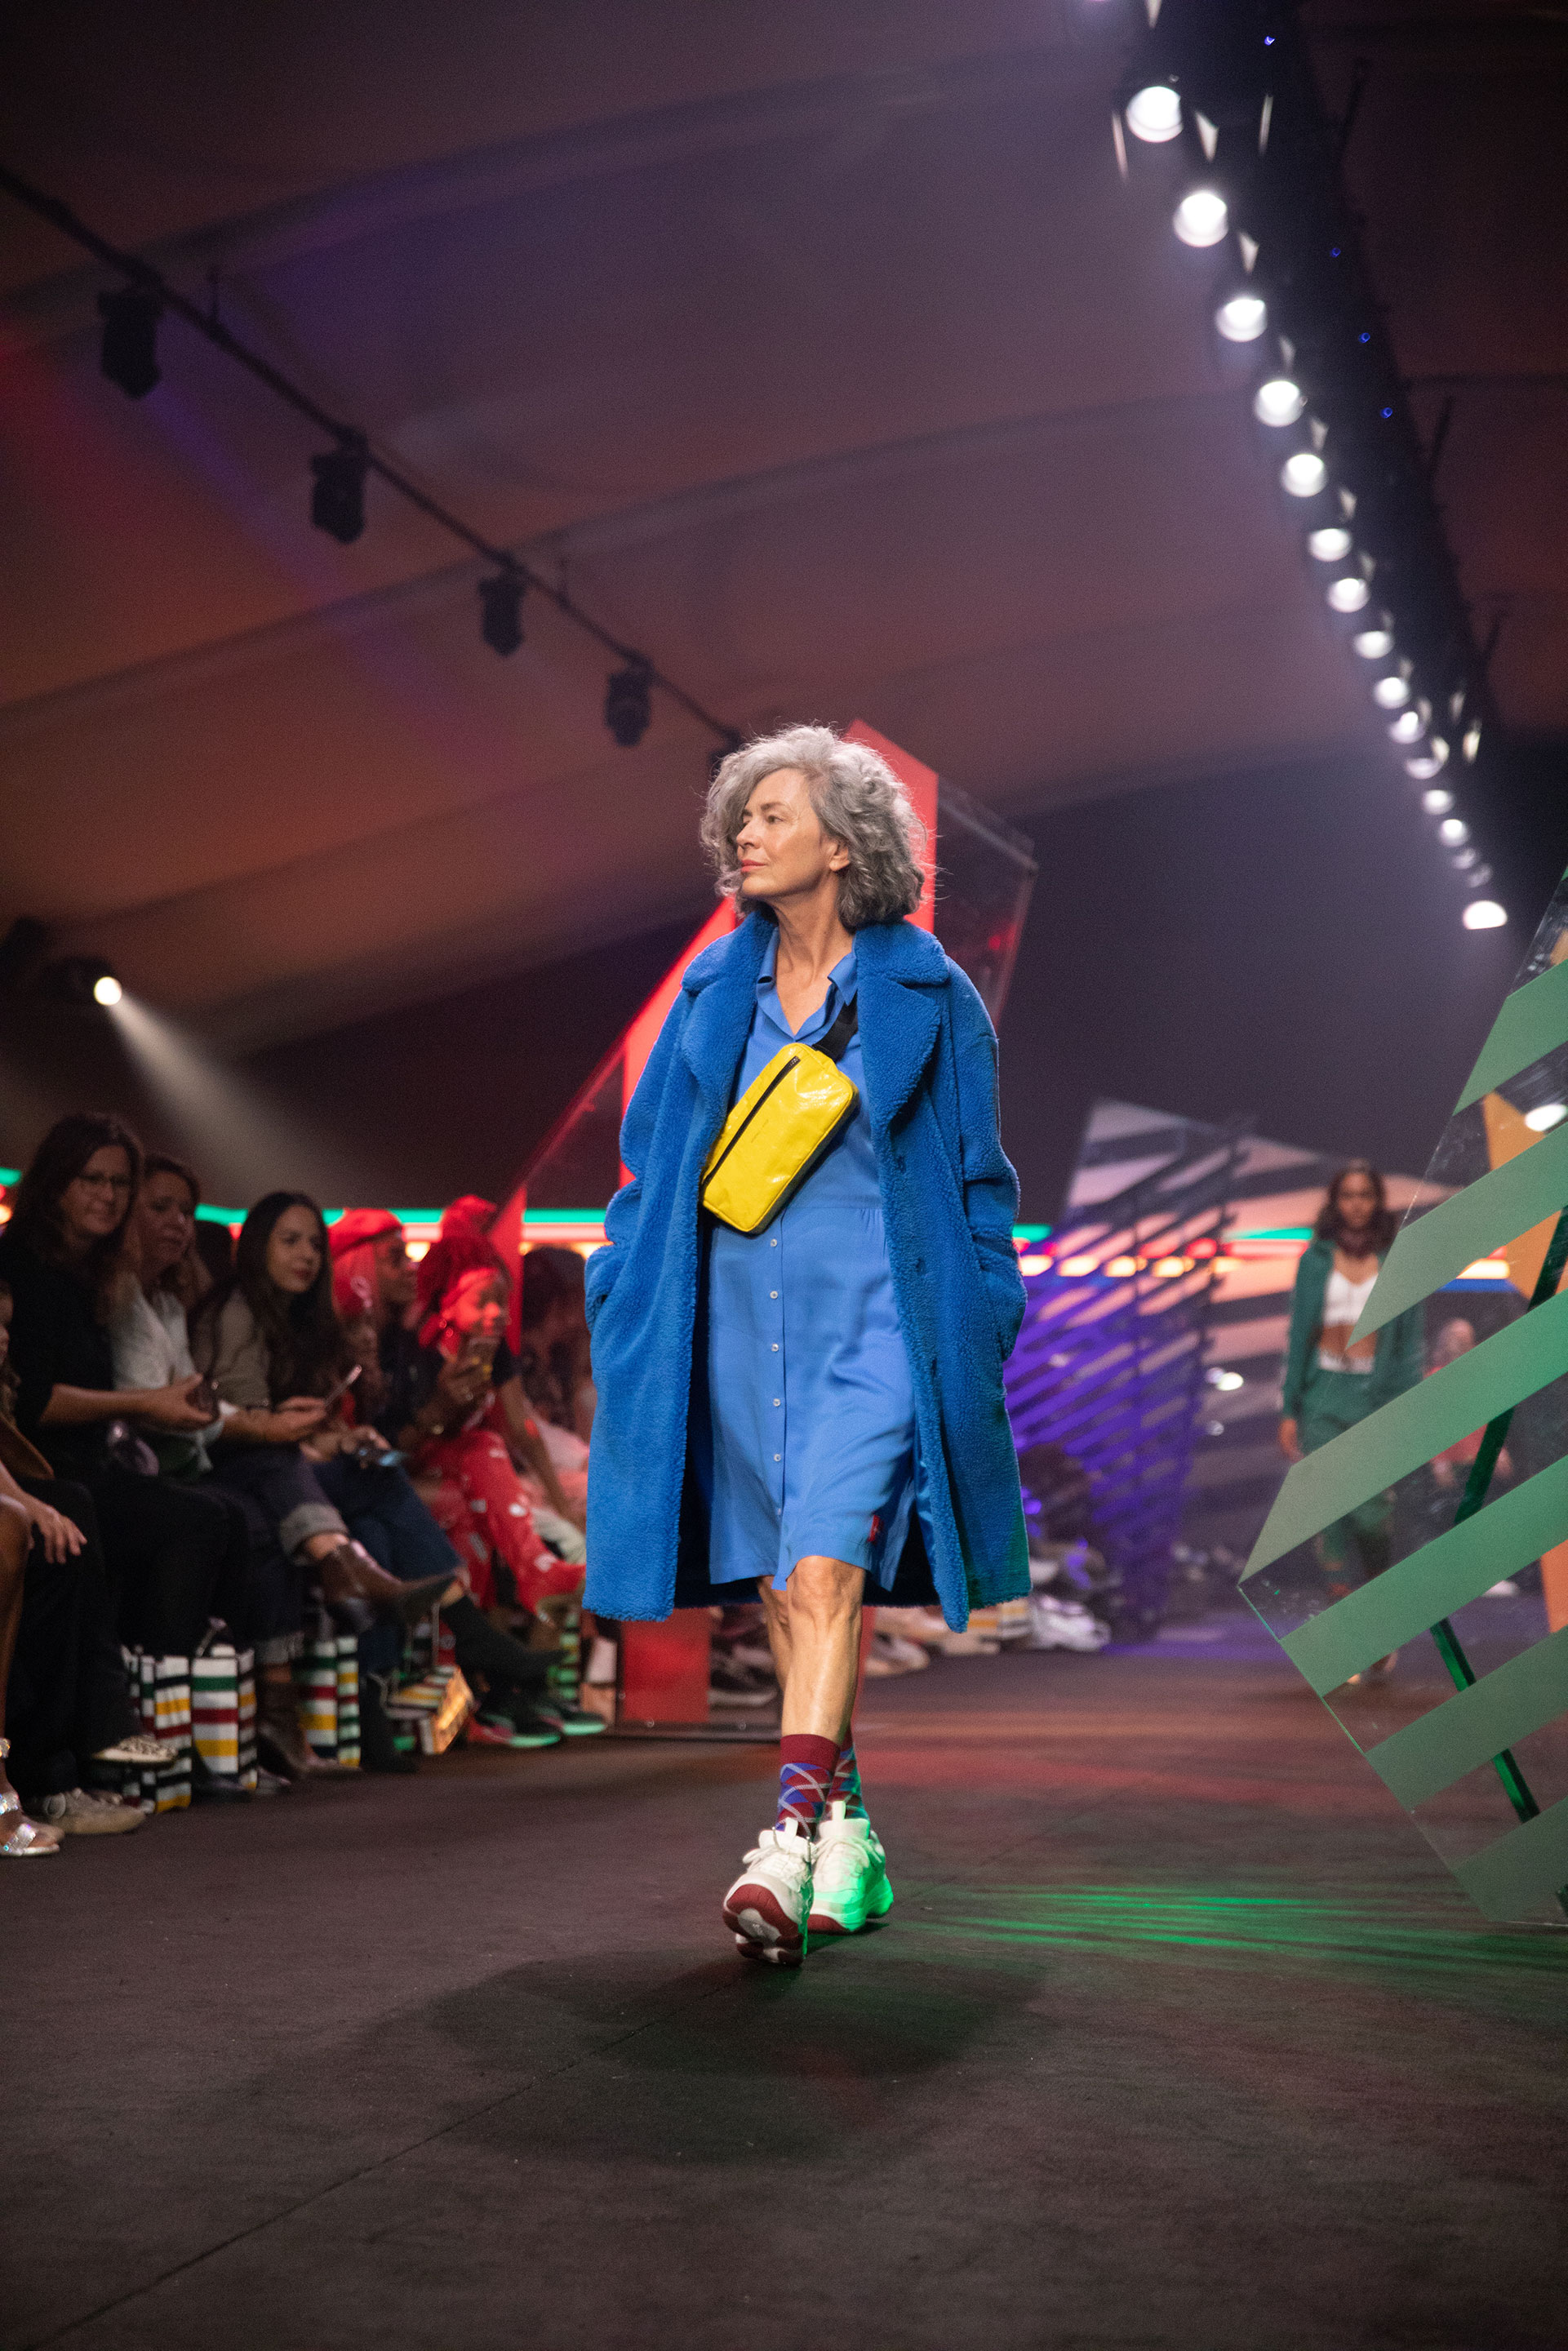 Hudson-Bay-Amsterdam-Fashion-Week-2018-Lennert-Antonissen